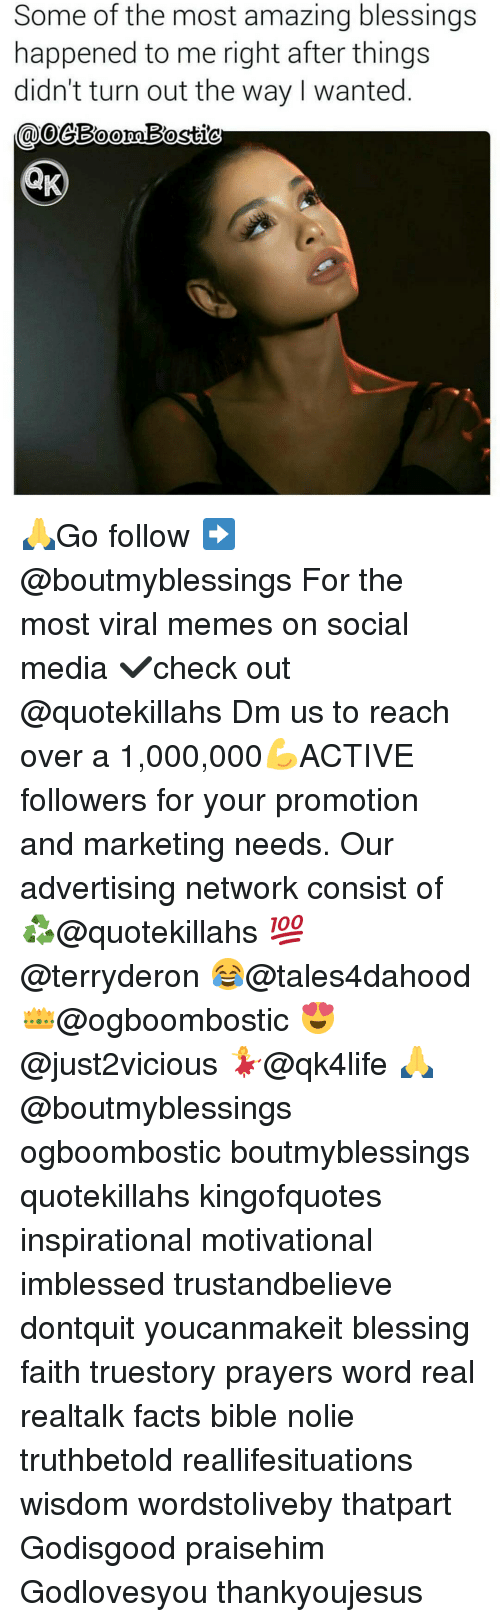 Memes, 🤖, and Media: Some of the most amazing blessings  happened to me right after things  didn't turn out the way wanted  COO 🙏Go follow ➡@boutmyblessings For the most viral memes on social media ✔check out @quotekillahs Dm us to reach over a 1,000,000💪ACTIVE followers for your promotion and marketing needs. Our advertising network consist of ♻@quotekillahs 💯@terryderon 😂@tales4dahood 👑@ogboombostic 😍@just2vicious 💃@qk4life 🙏@boutmyblessings ogboombostic boutmyblessings quotekillahs kingofquotes inspirational motivational imblessed trustandbelieve dontquit youcanmakeit blessing faith truestory prayers word real realtalk facts bible nolie truthbetold reallifesituations wisdom wordstoliveby thatpart Godisgood praisehim Godlovesyou thankyoujesus